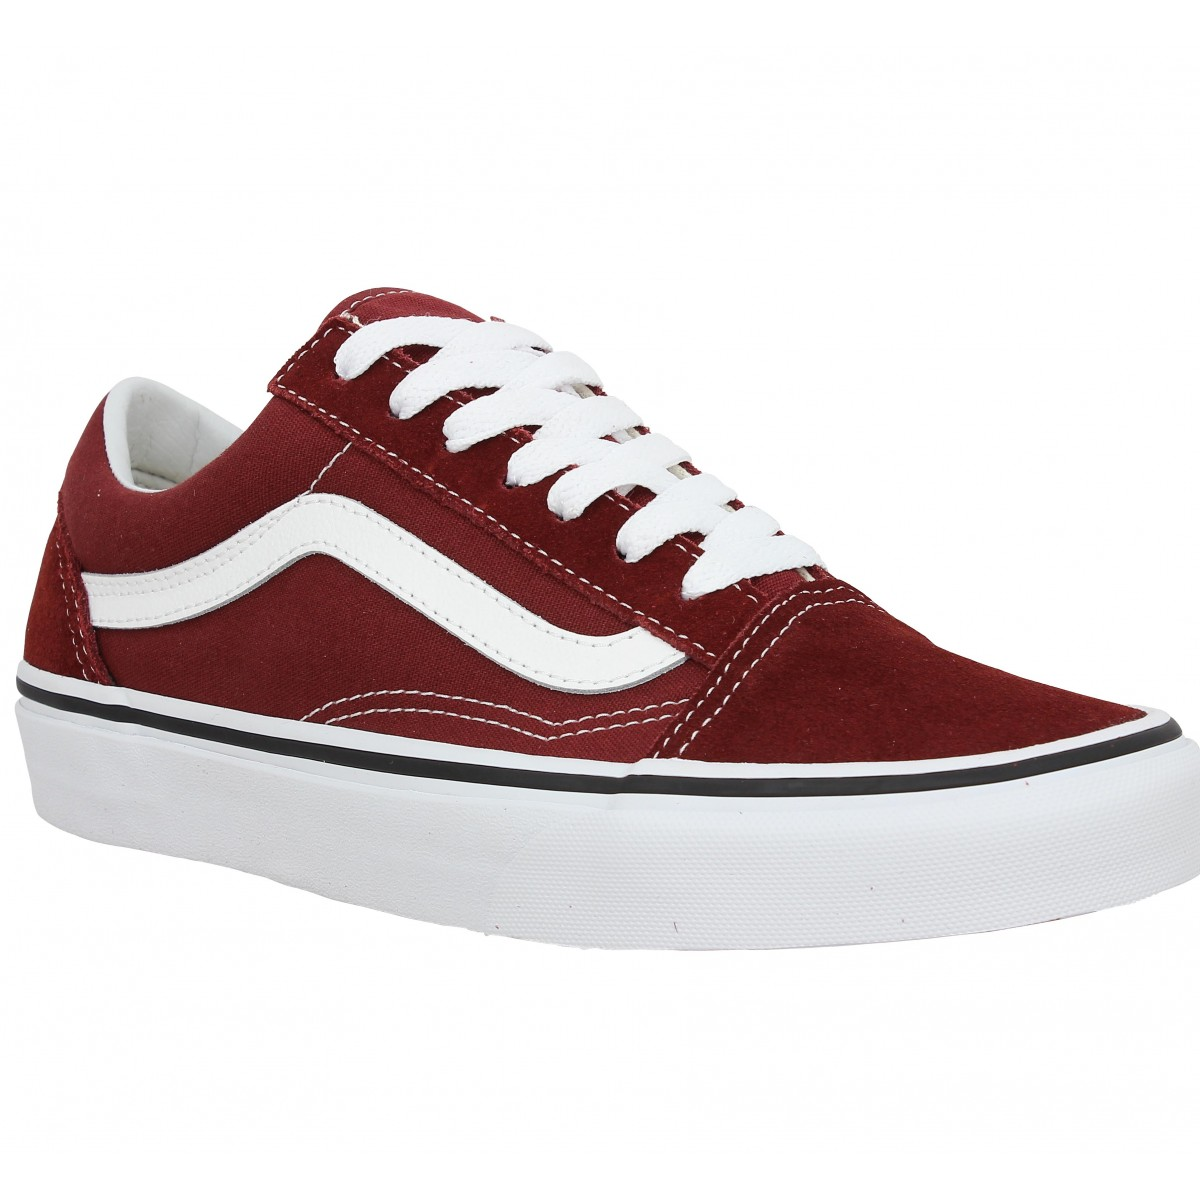 Baskets VANS Old Skool velours toile Madder Brown